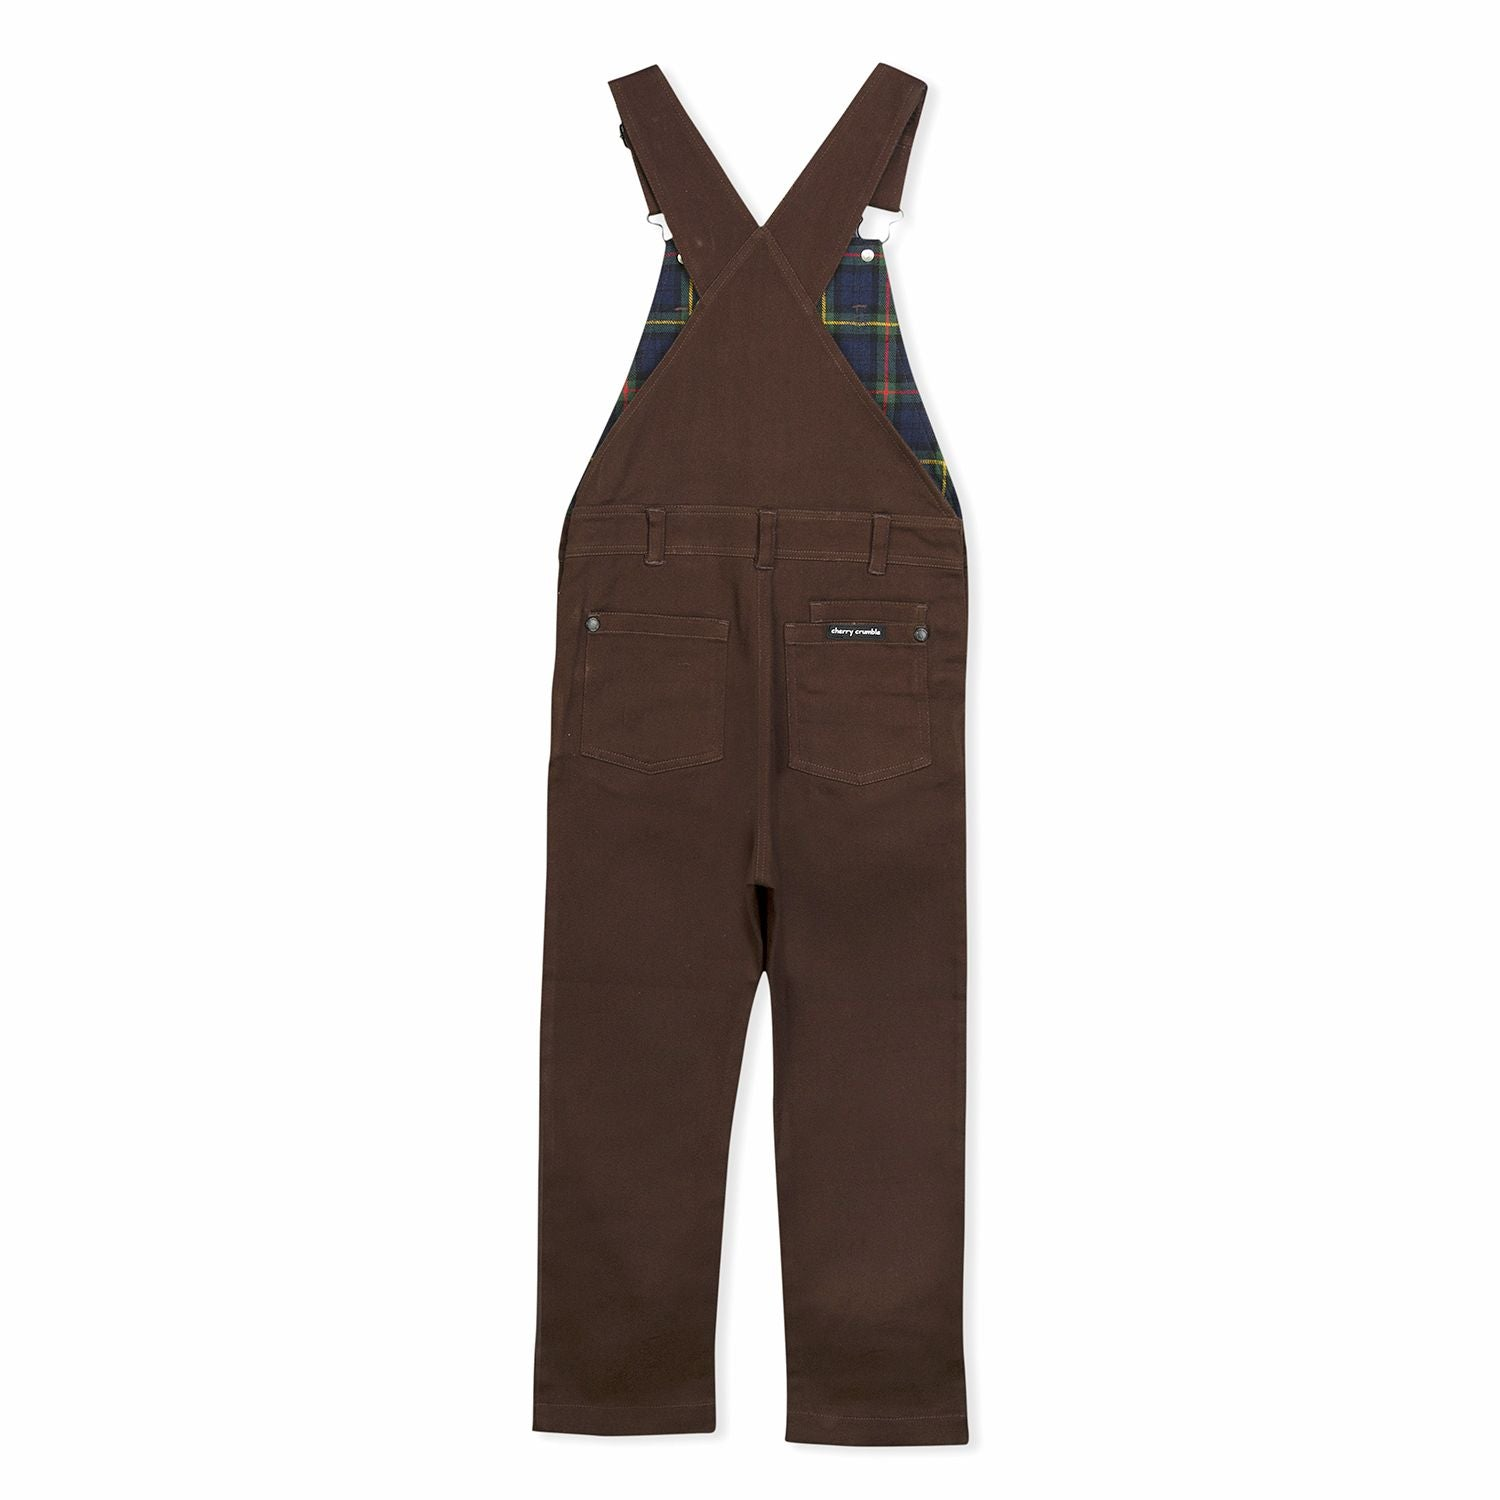 Scottish Dungaree for kids